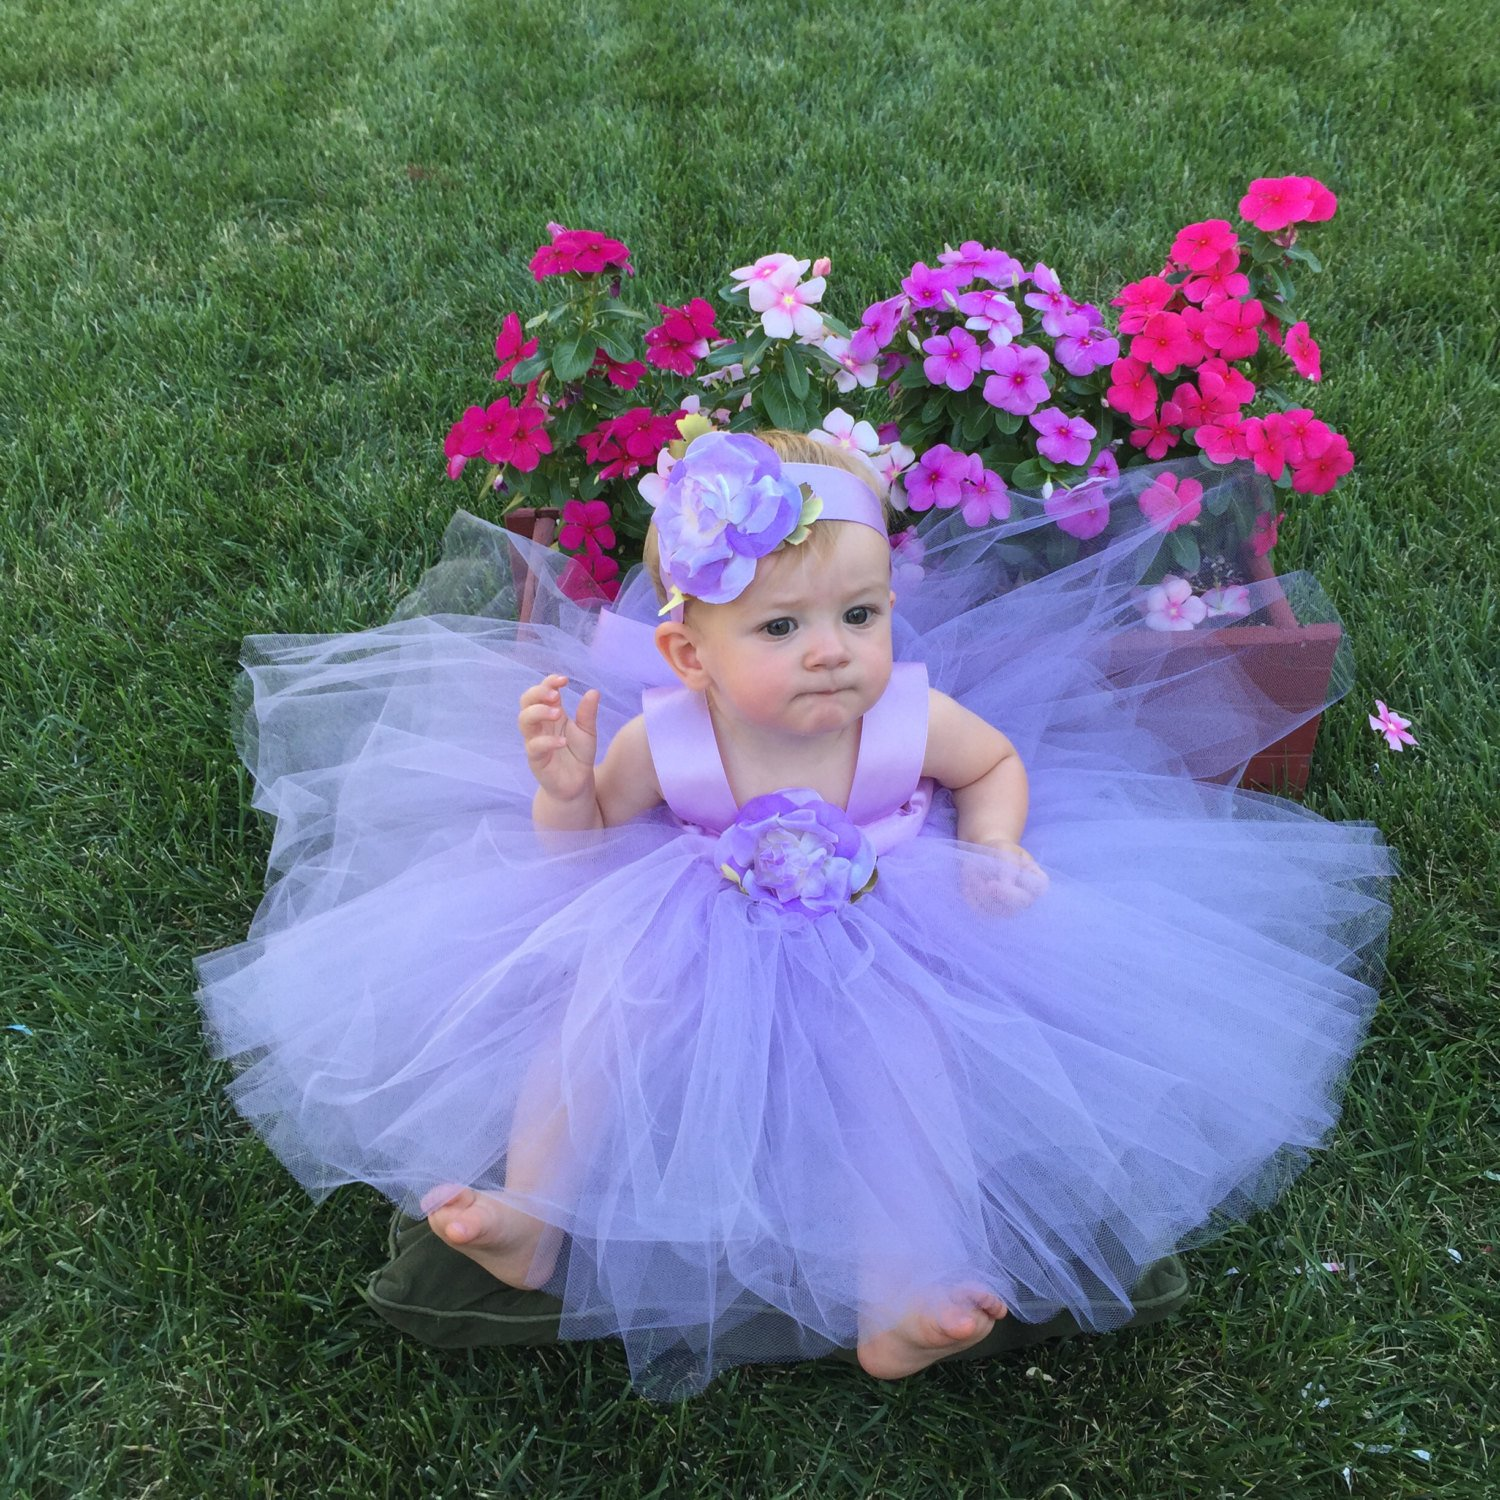 b8fac1797d Baby Flower Girl Dress Lilac Lavender Purple Tulle Custom Designer Flowergirl  Gown Hair Accessories Birthday Outfit Halloween Costume Ideas